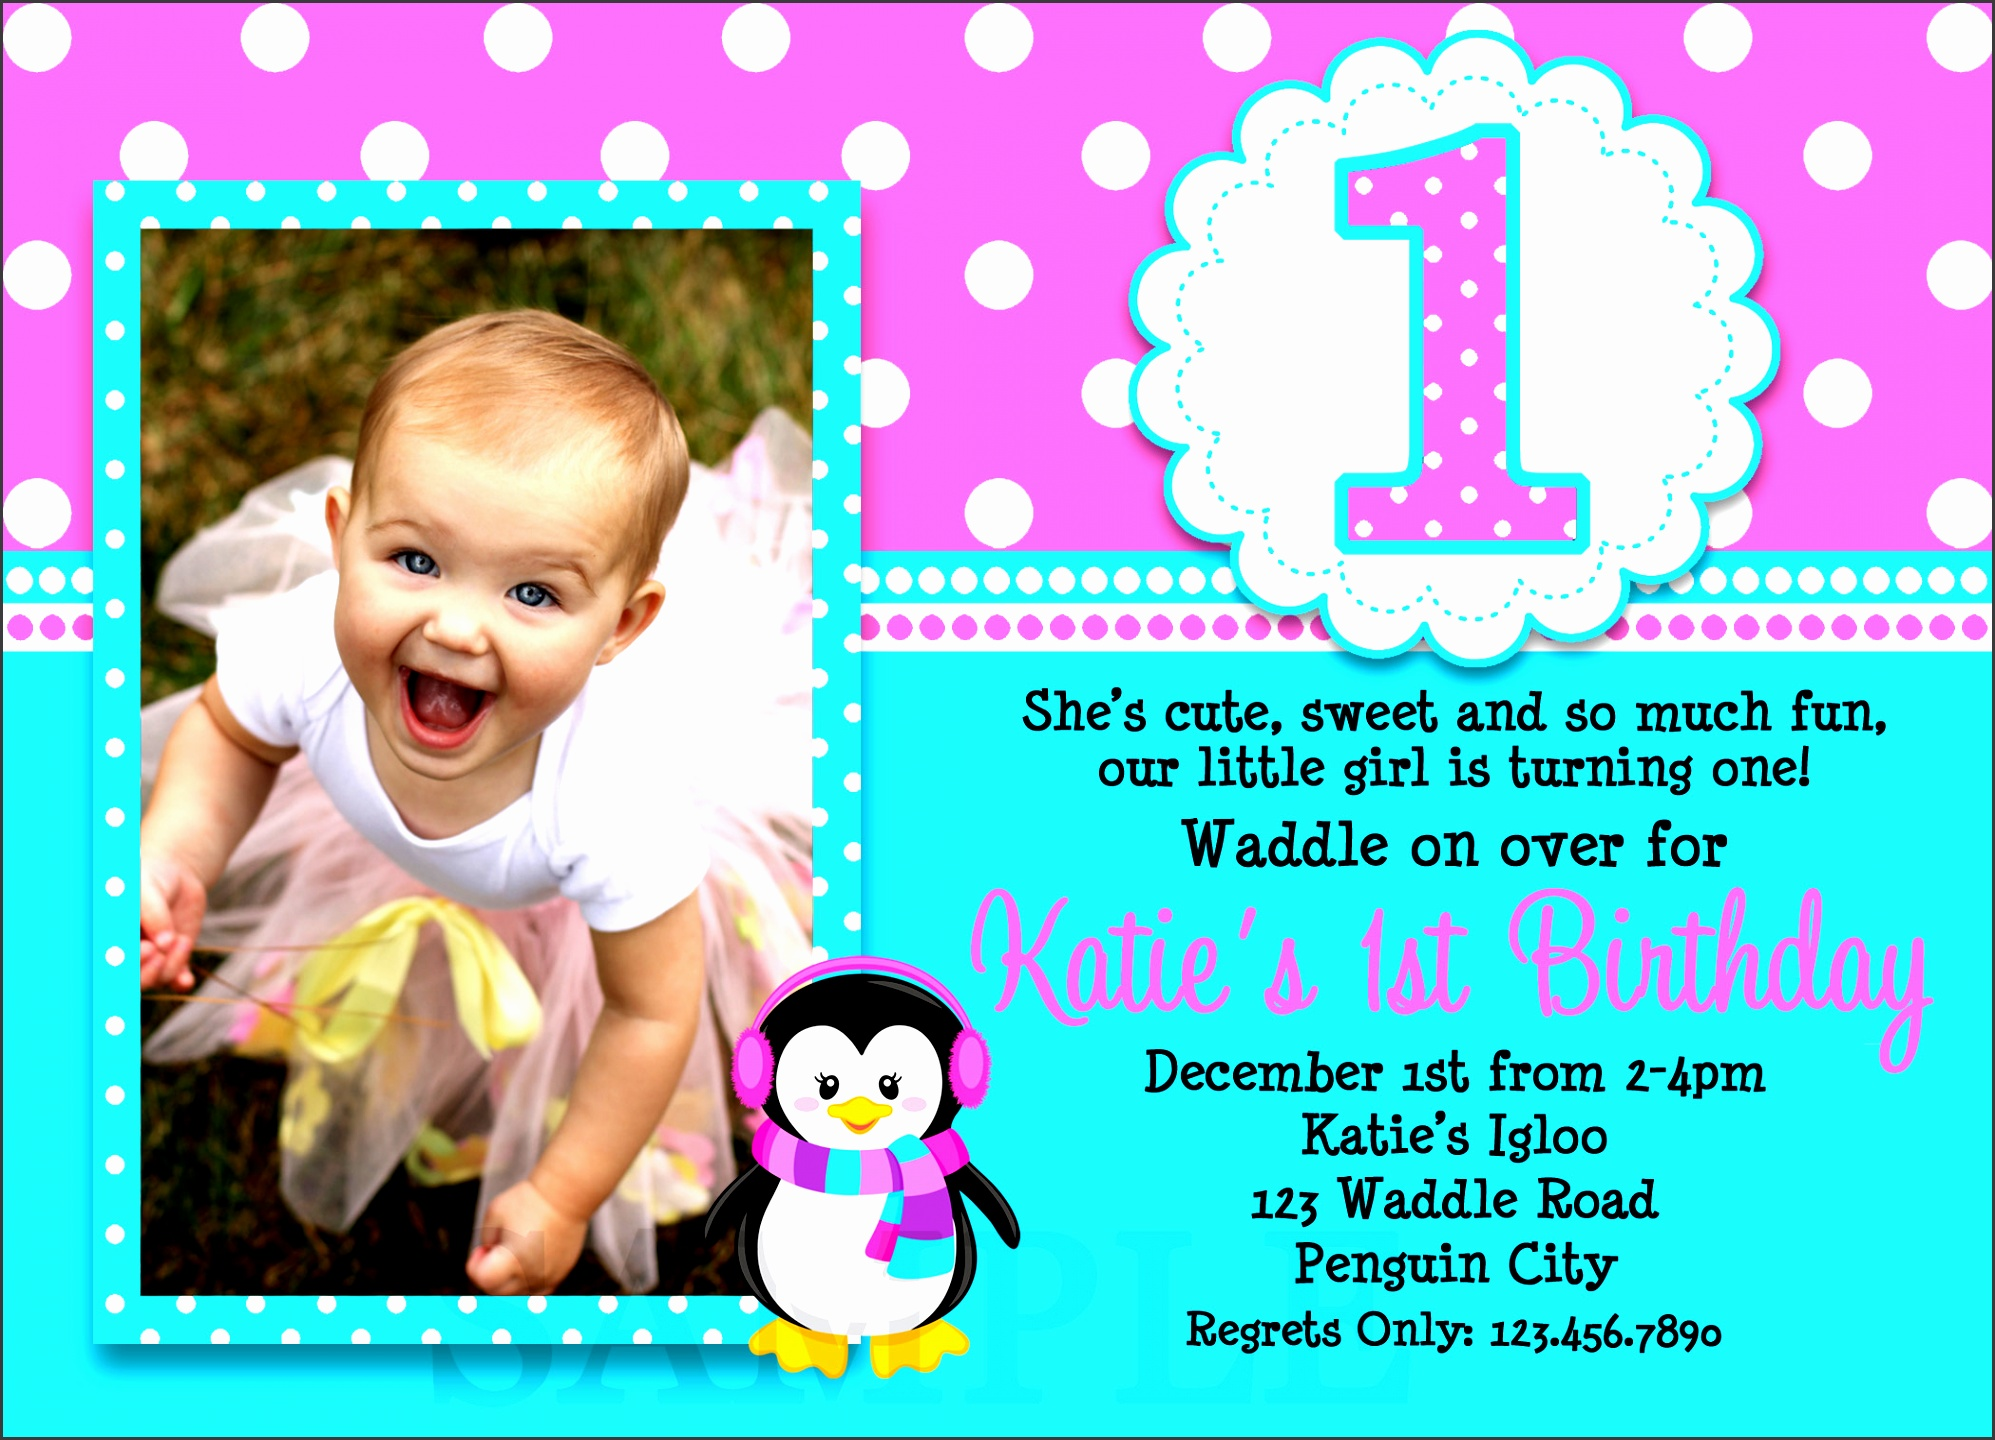 10 birthday party invitation template for baby girl 1st birthday invitations stopboris Choice Image